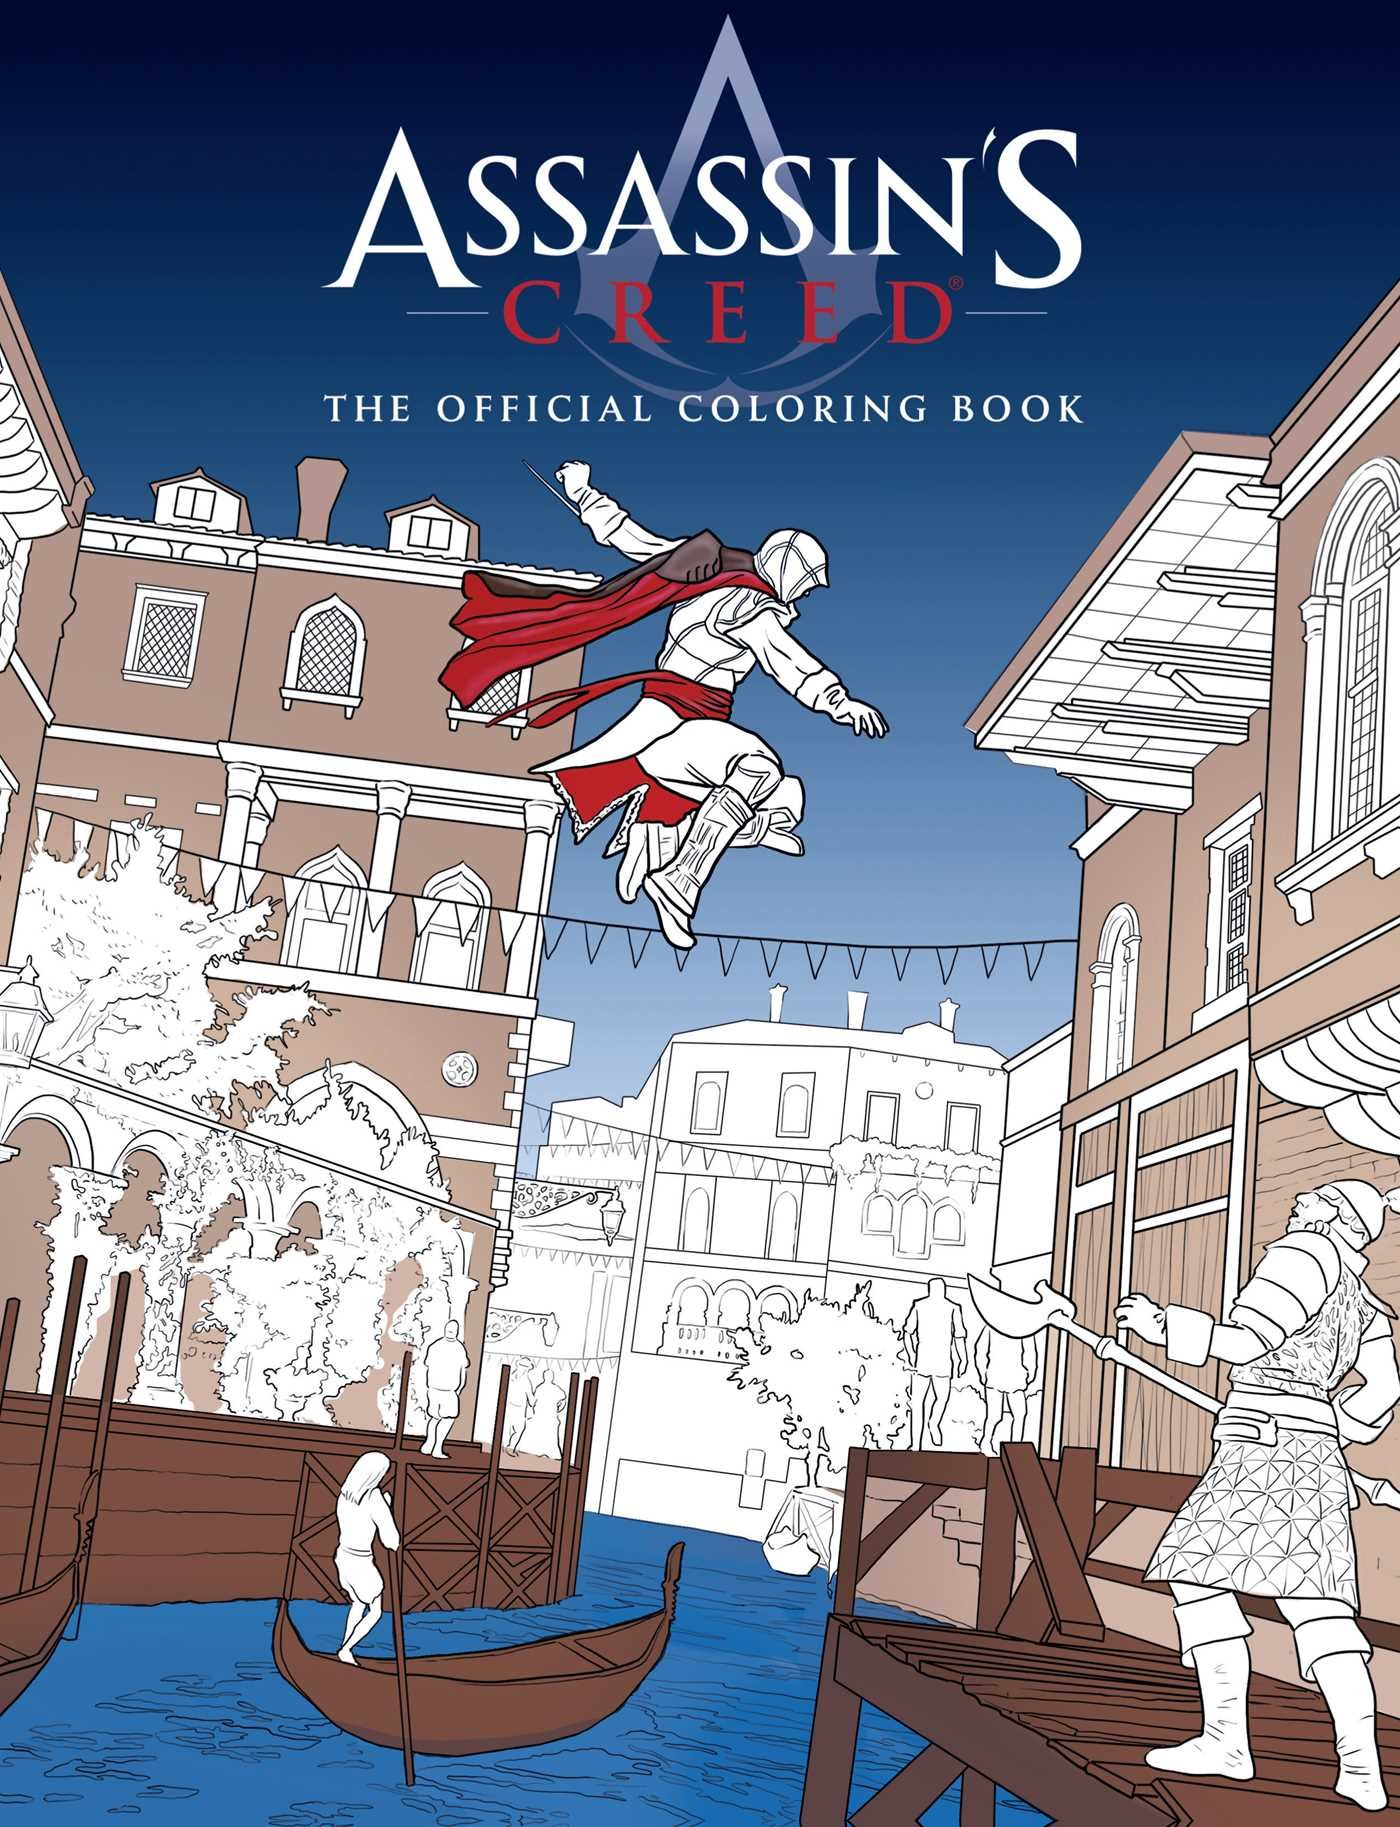 Download ASSASSIN'S CREED: THE OFFICIAL COLORING BOOK 